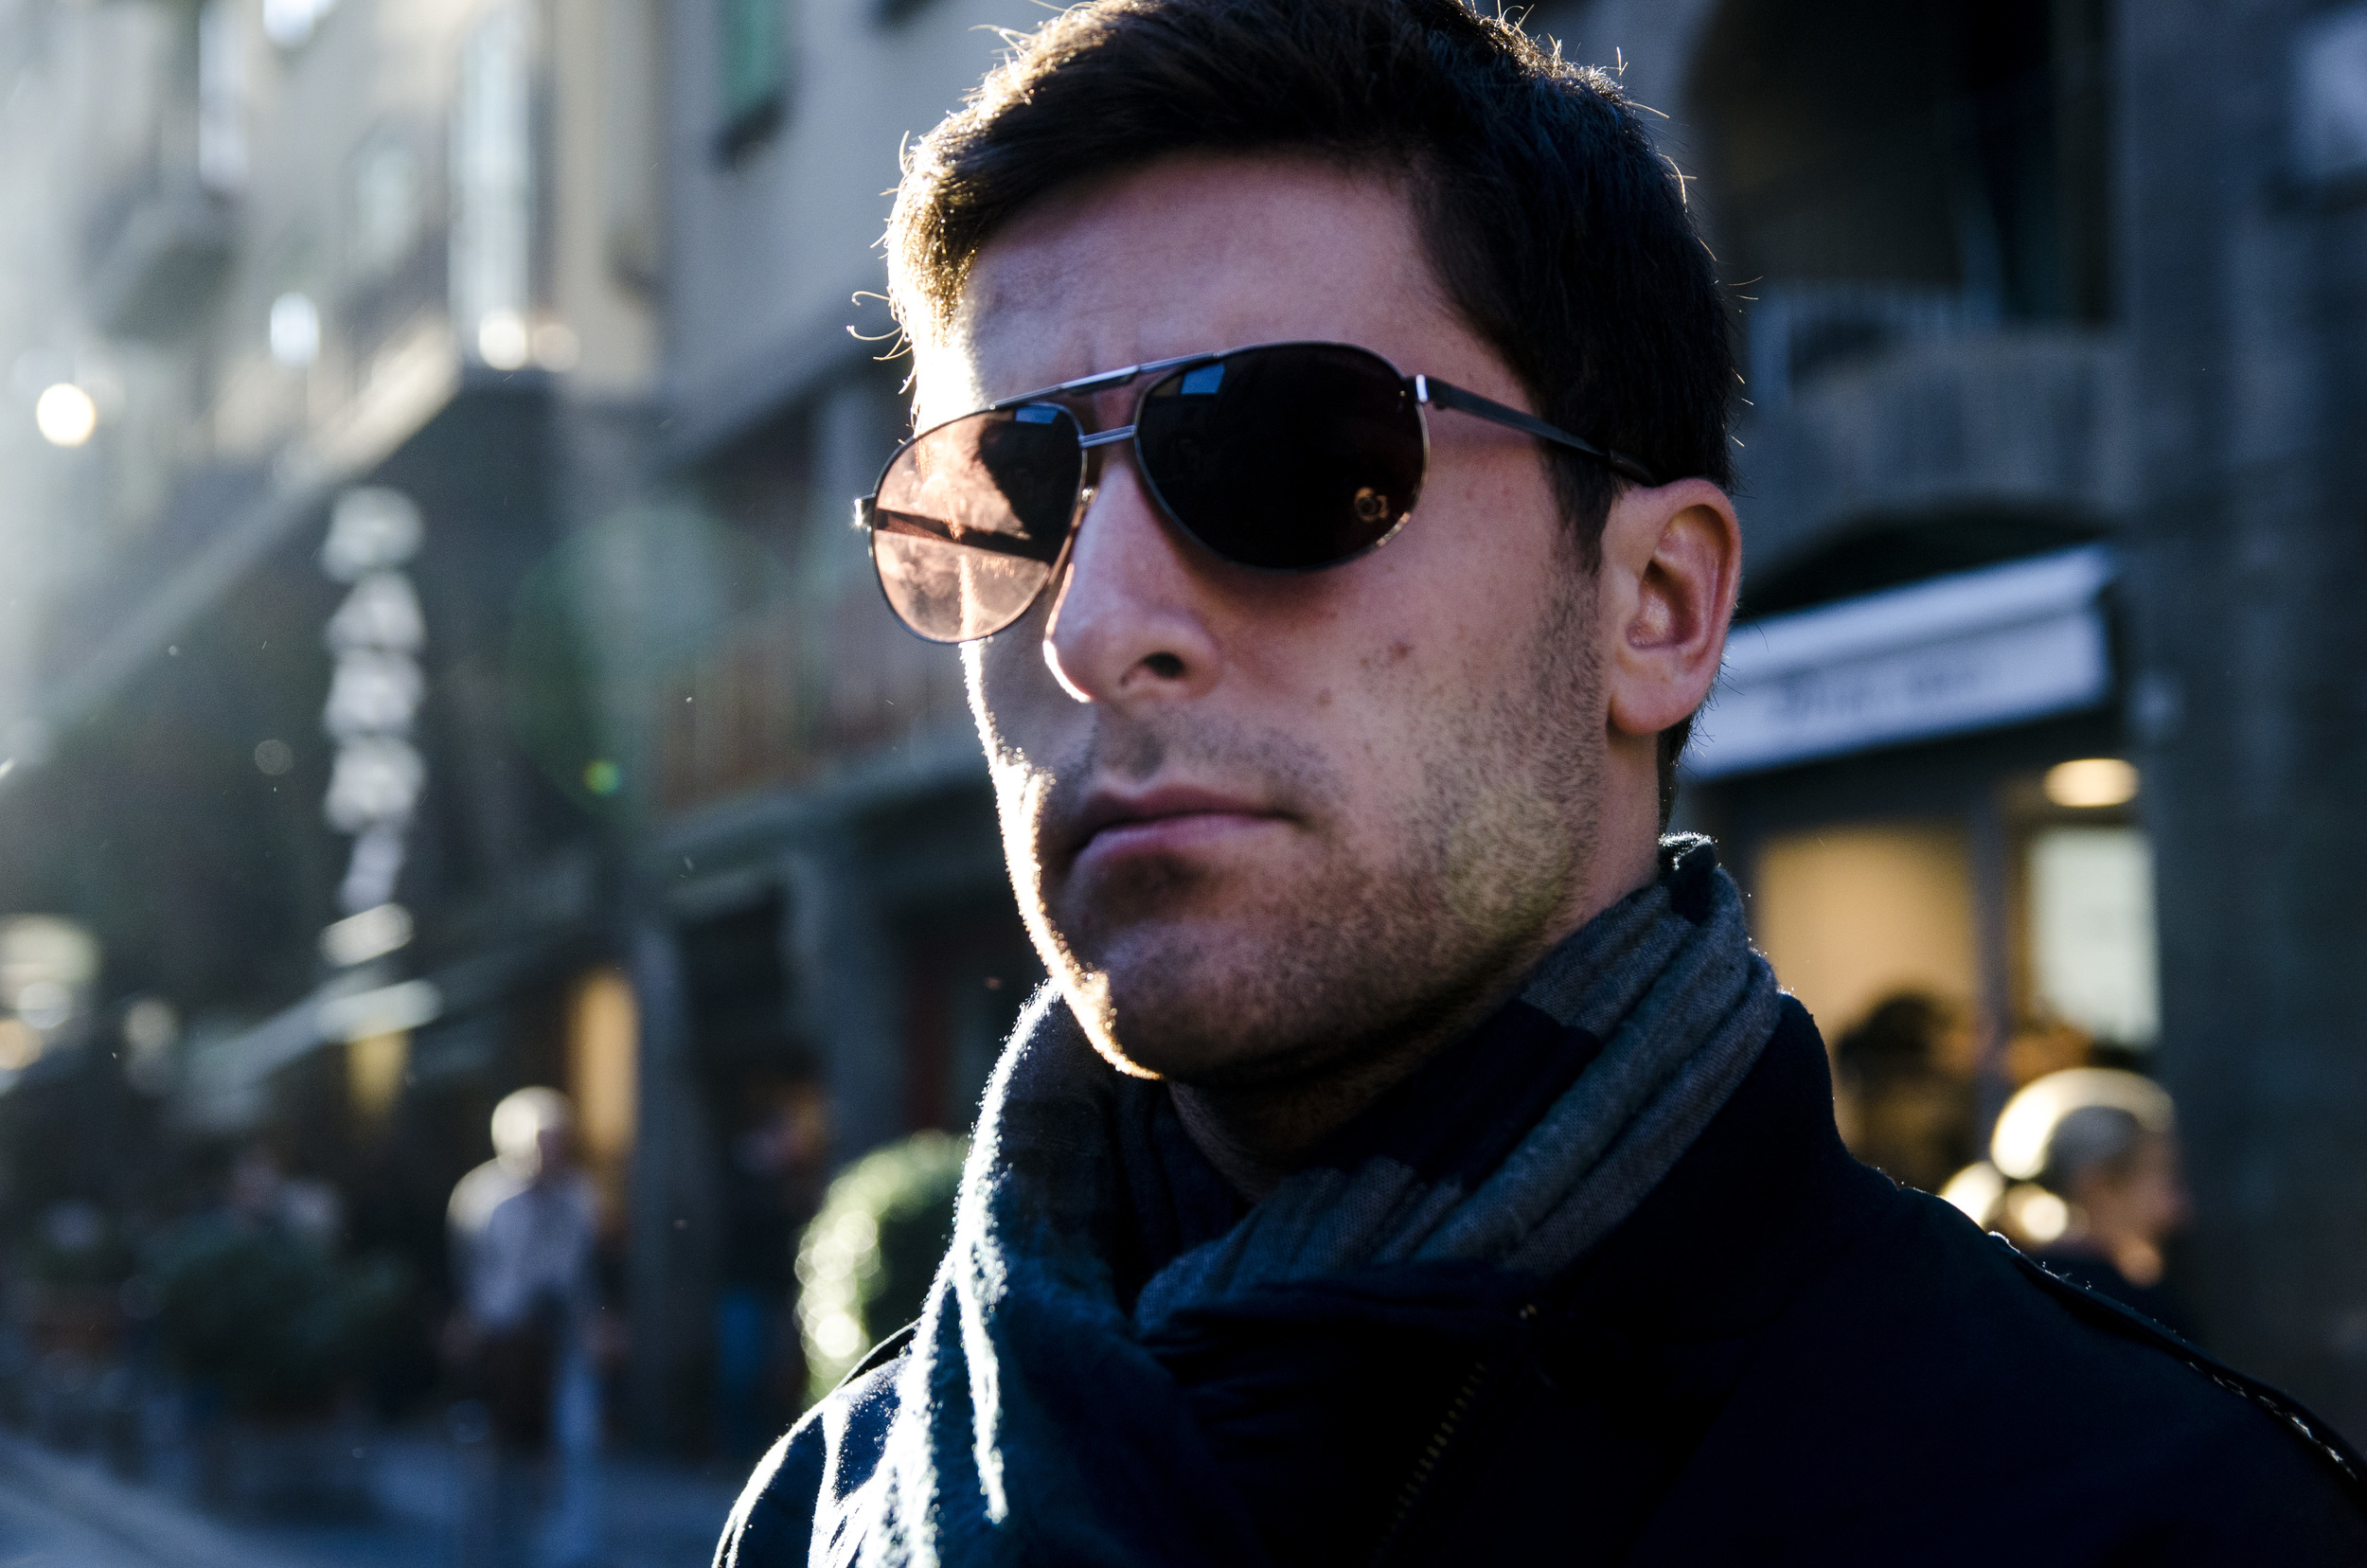 Joseph Fierberg stands on the streets of Florence, Italy basking in the golden beams of the sun.